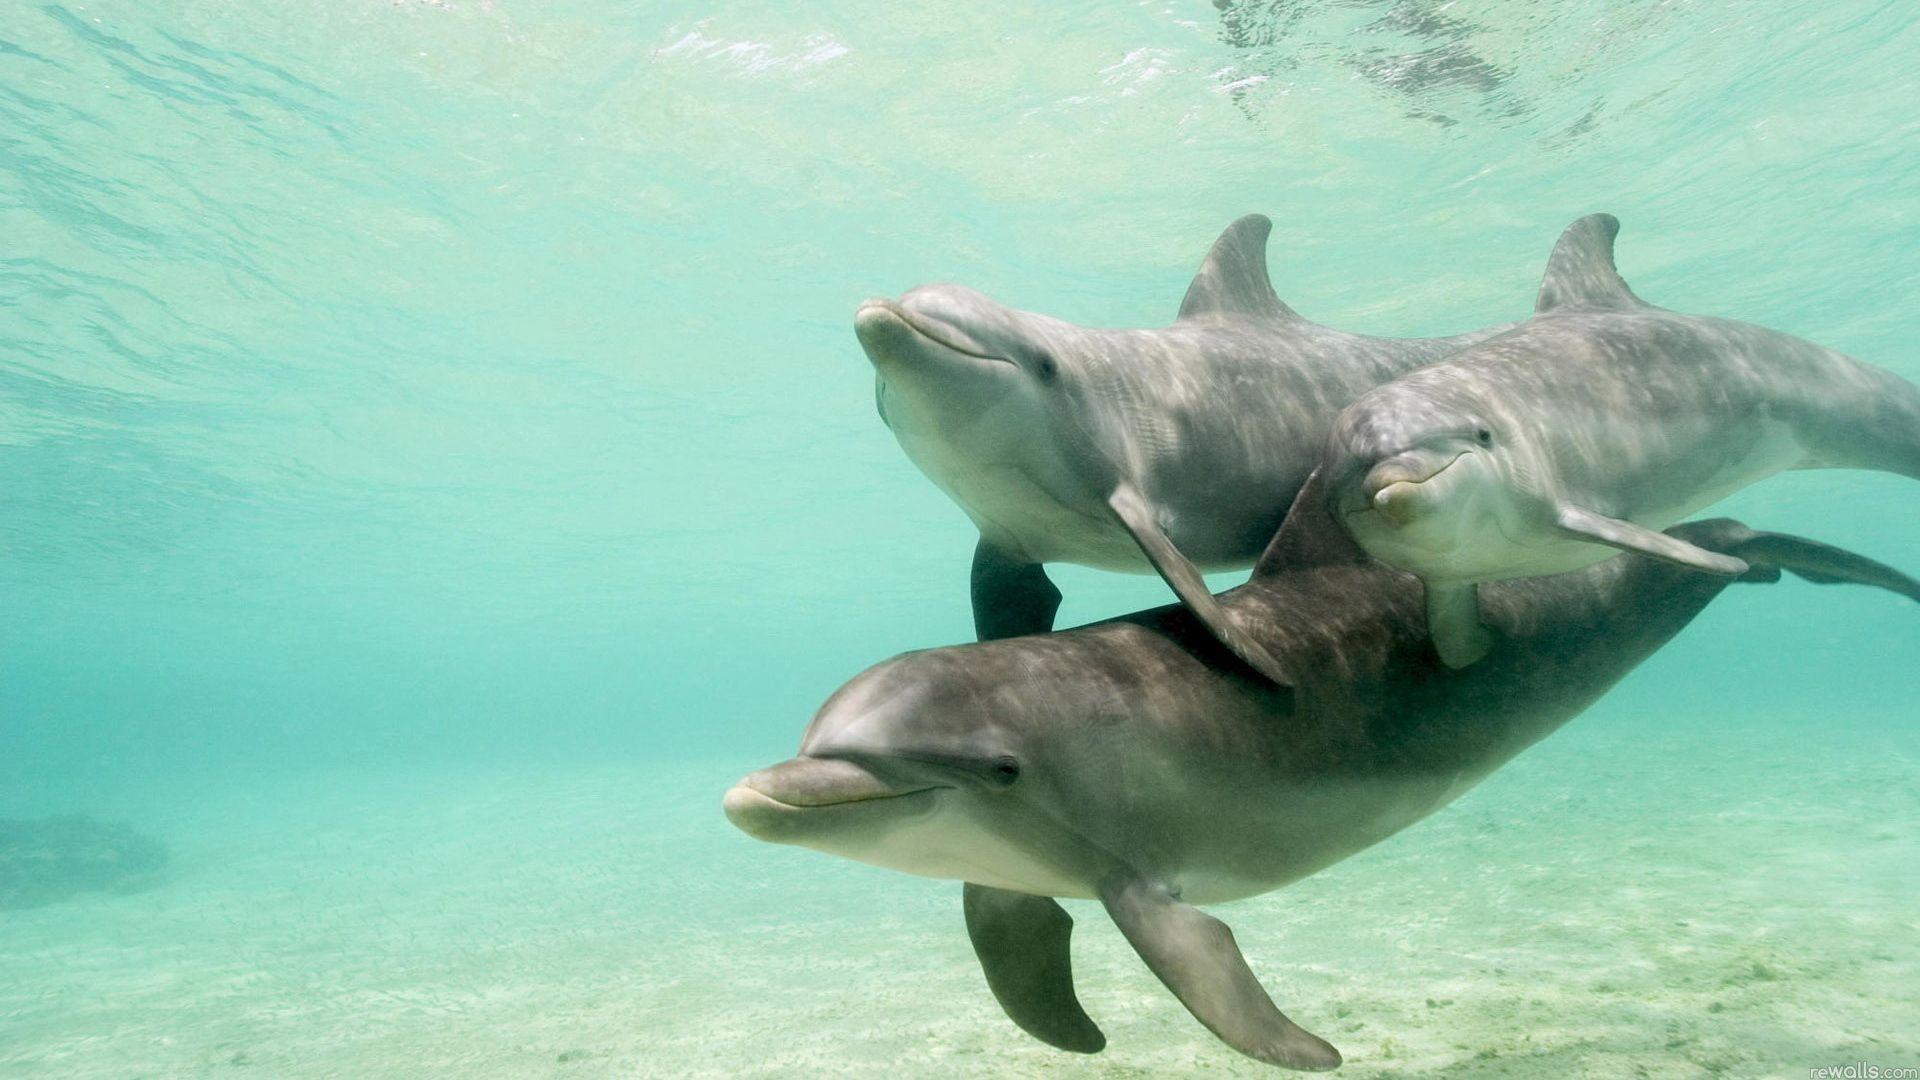 87832 download wallpaper Animals, Dolfins, Family, Underwater World, To Swim, Swim, Care screensavers and pictures for free